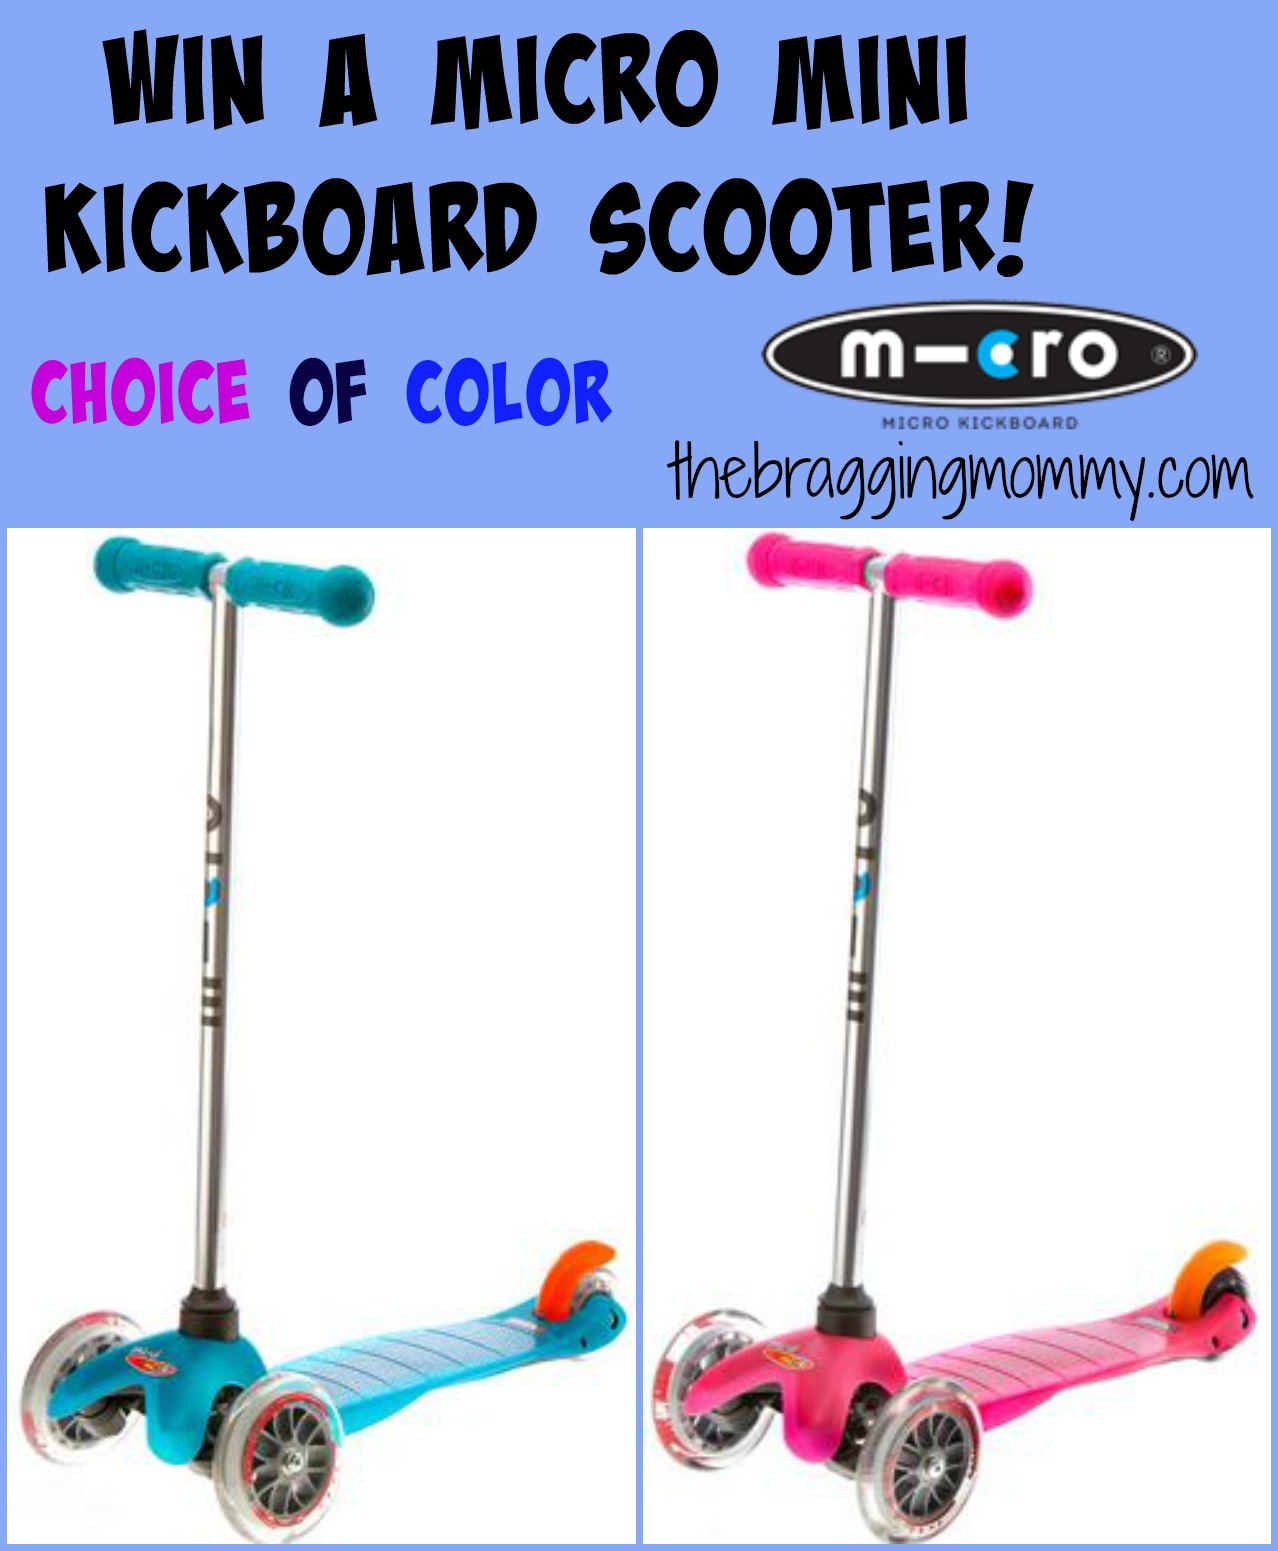 Micro Mini Kickboard Scooter Review and Giveaway